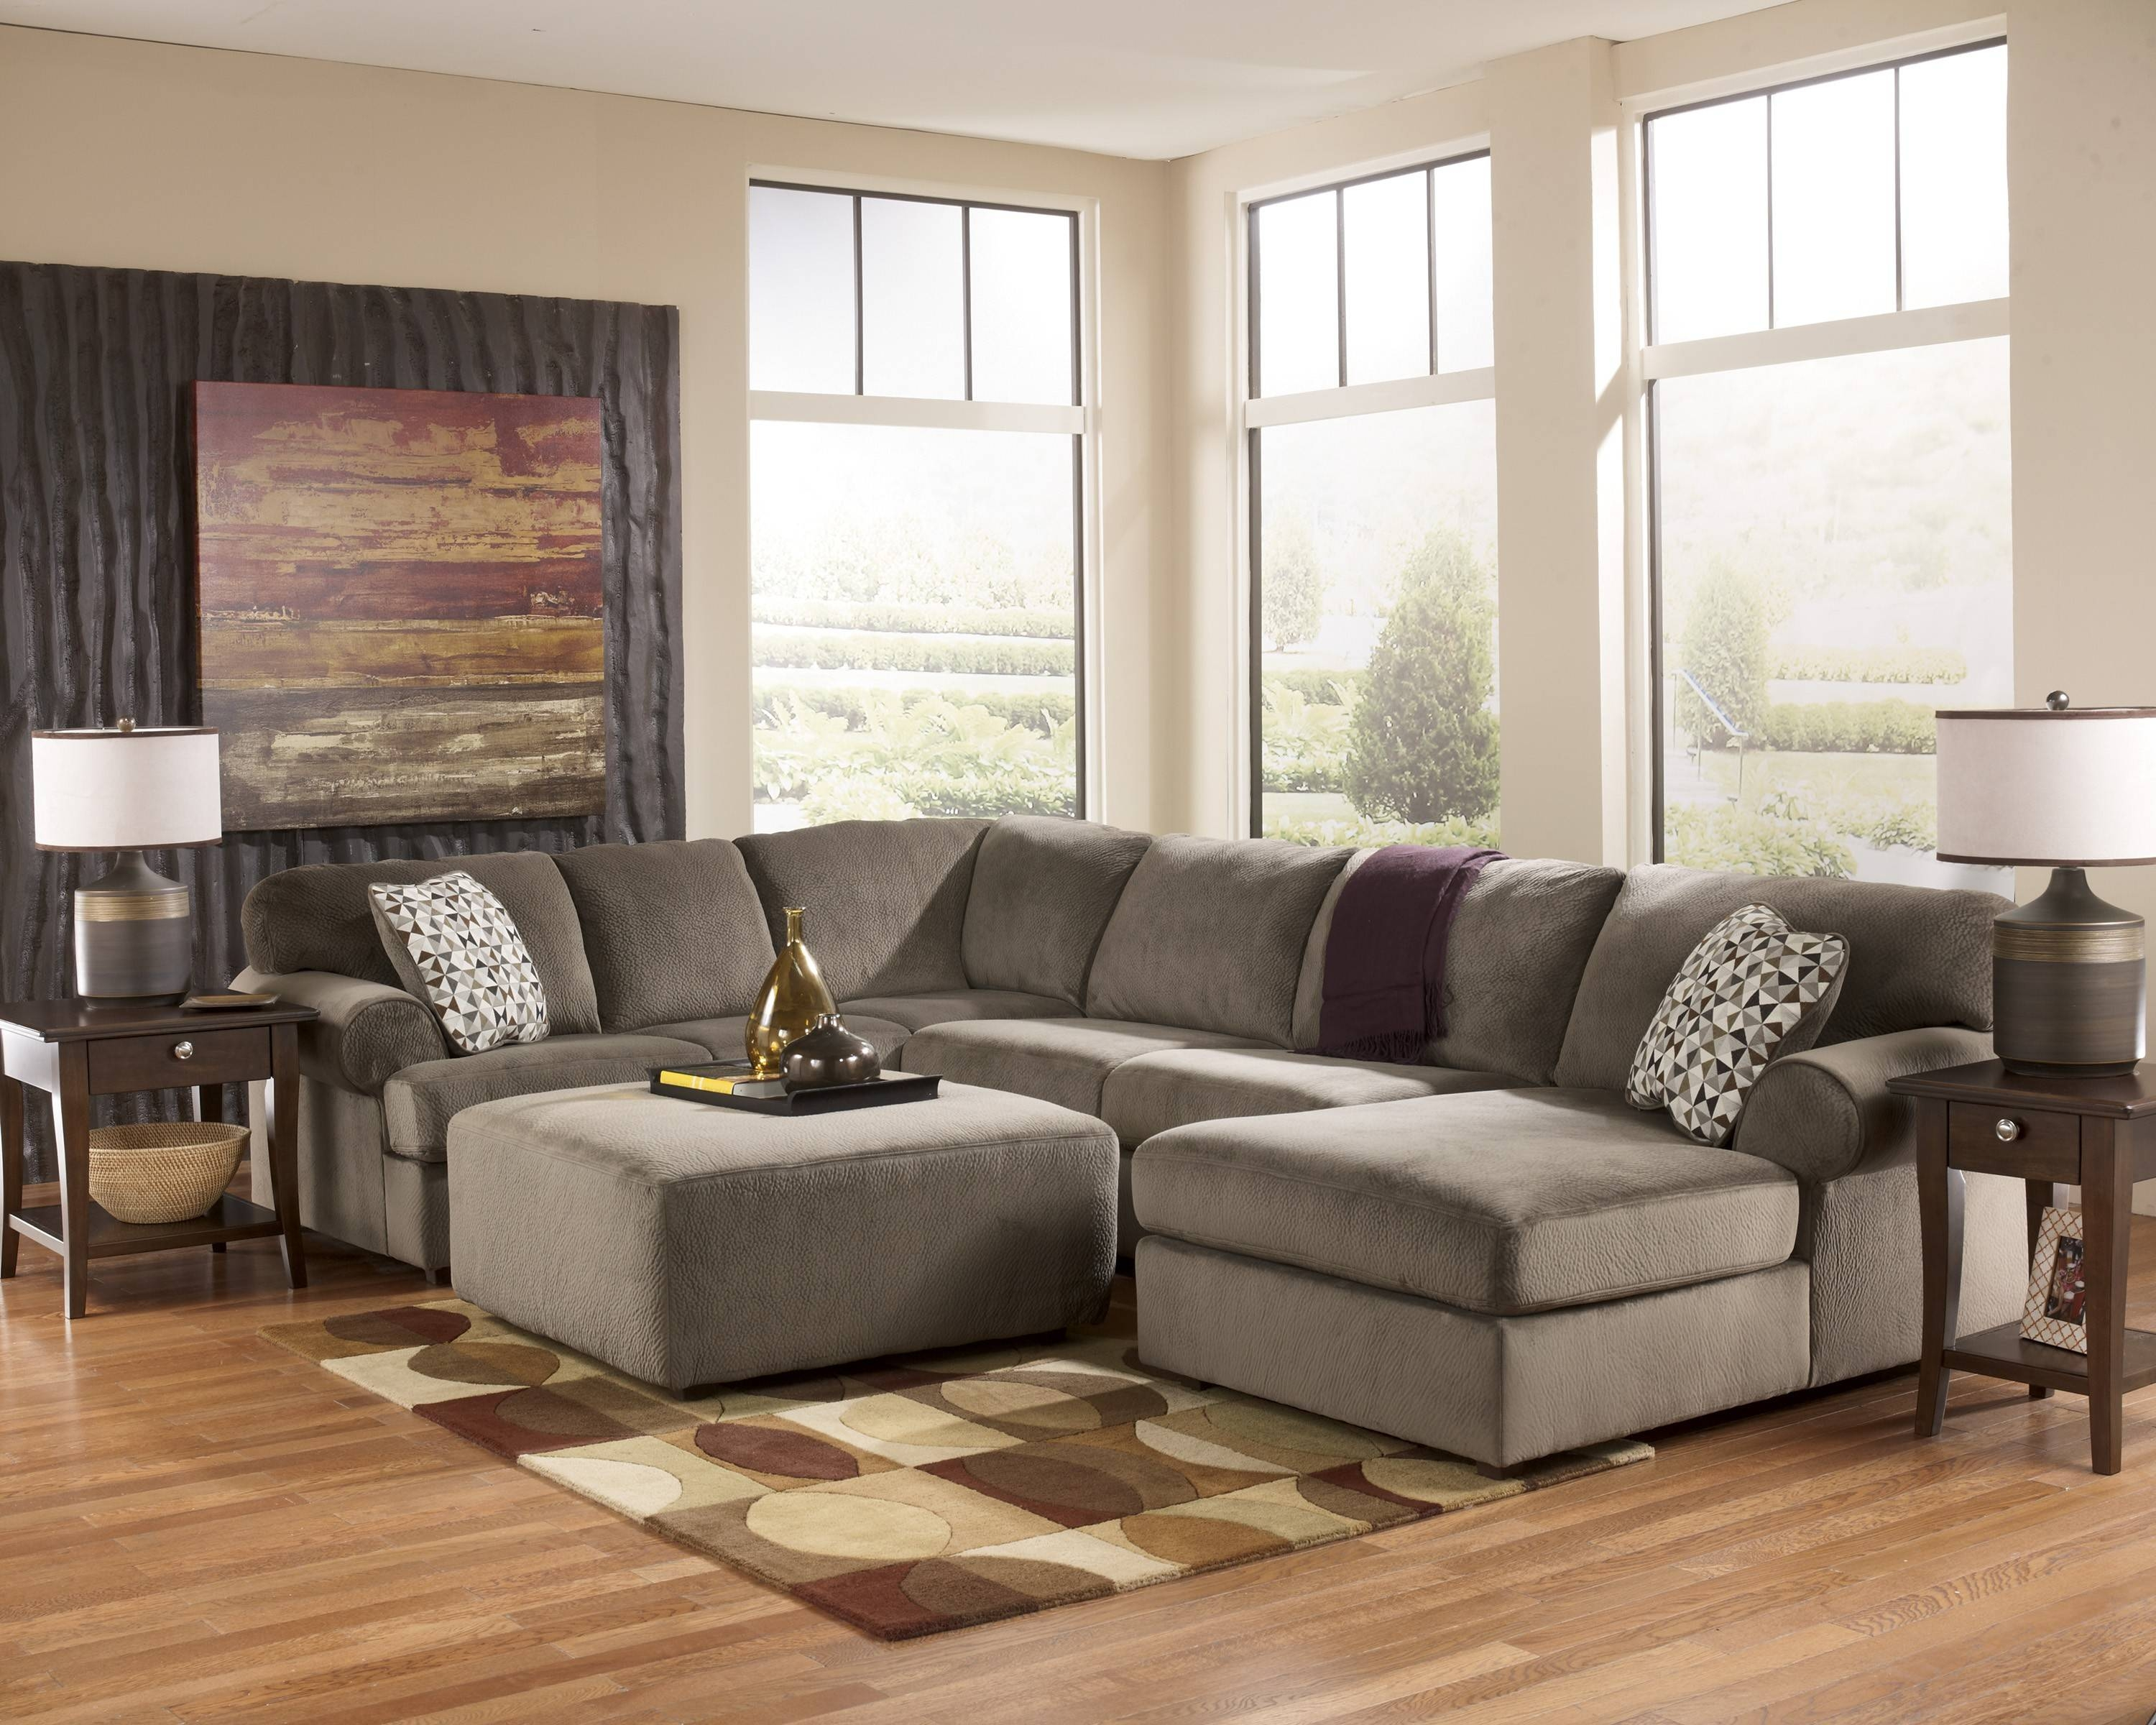 The Best Sectional Sofa With Ottoman : sectional couch with large ottoman - Sectionals, Sofas & Couches